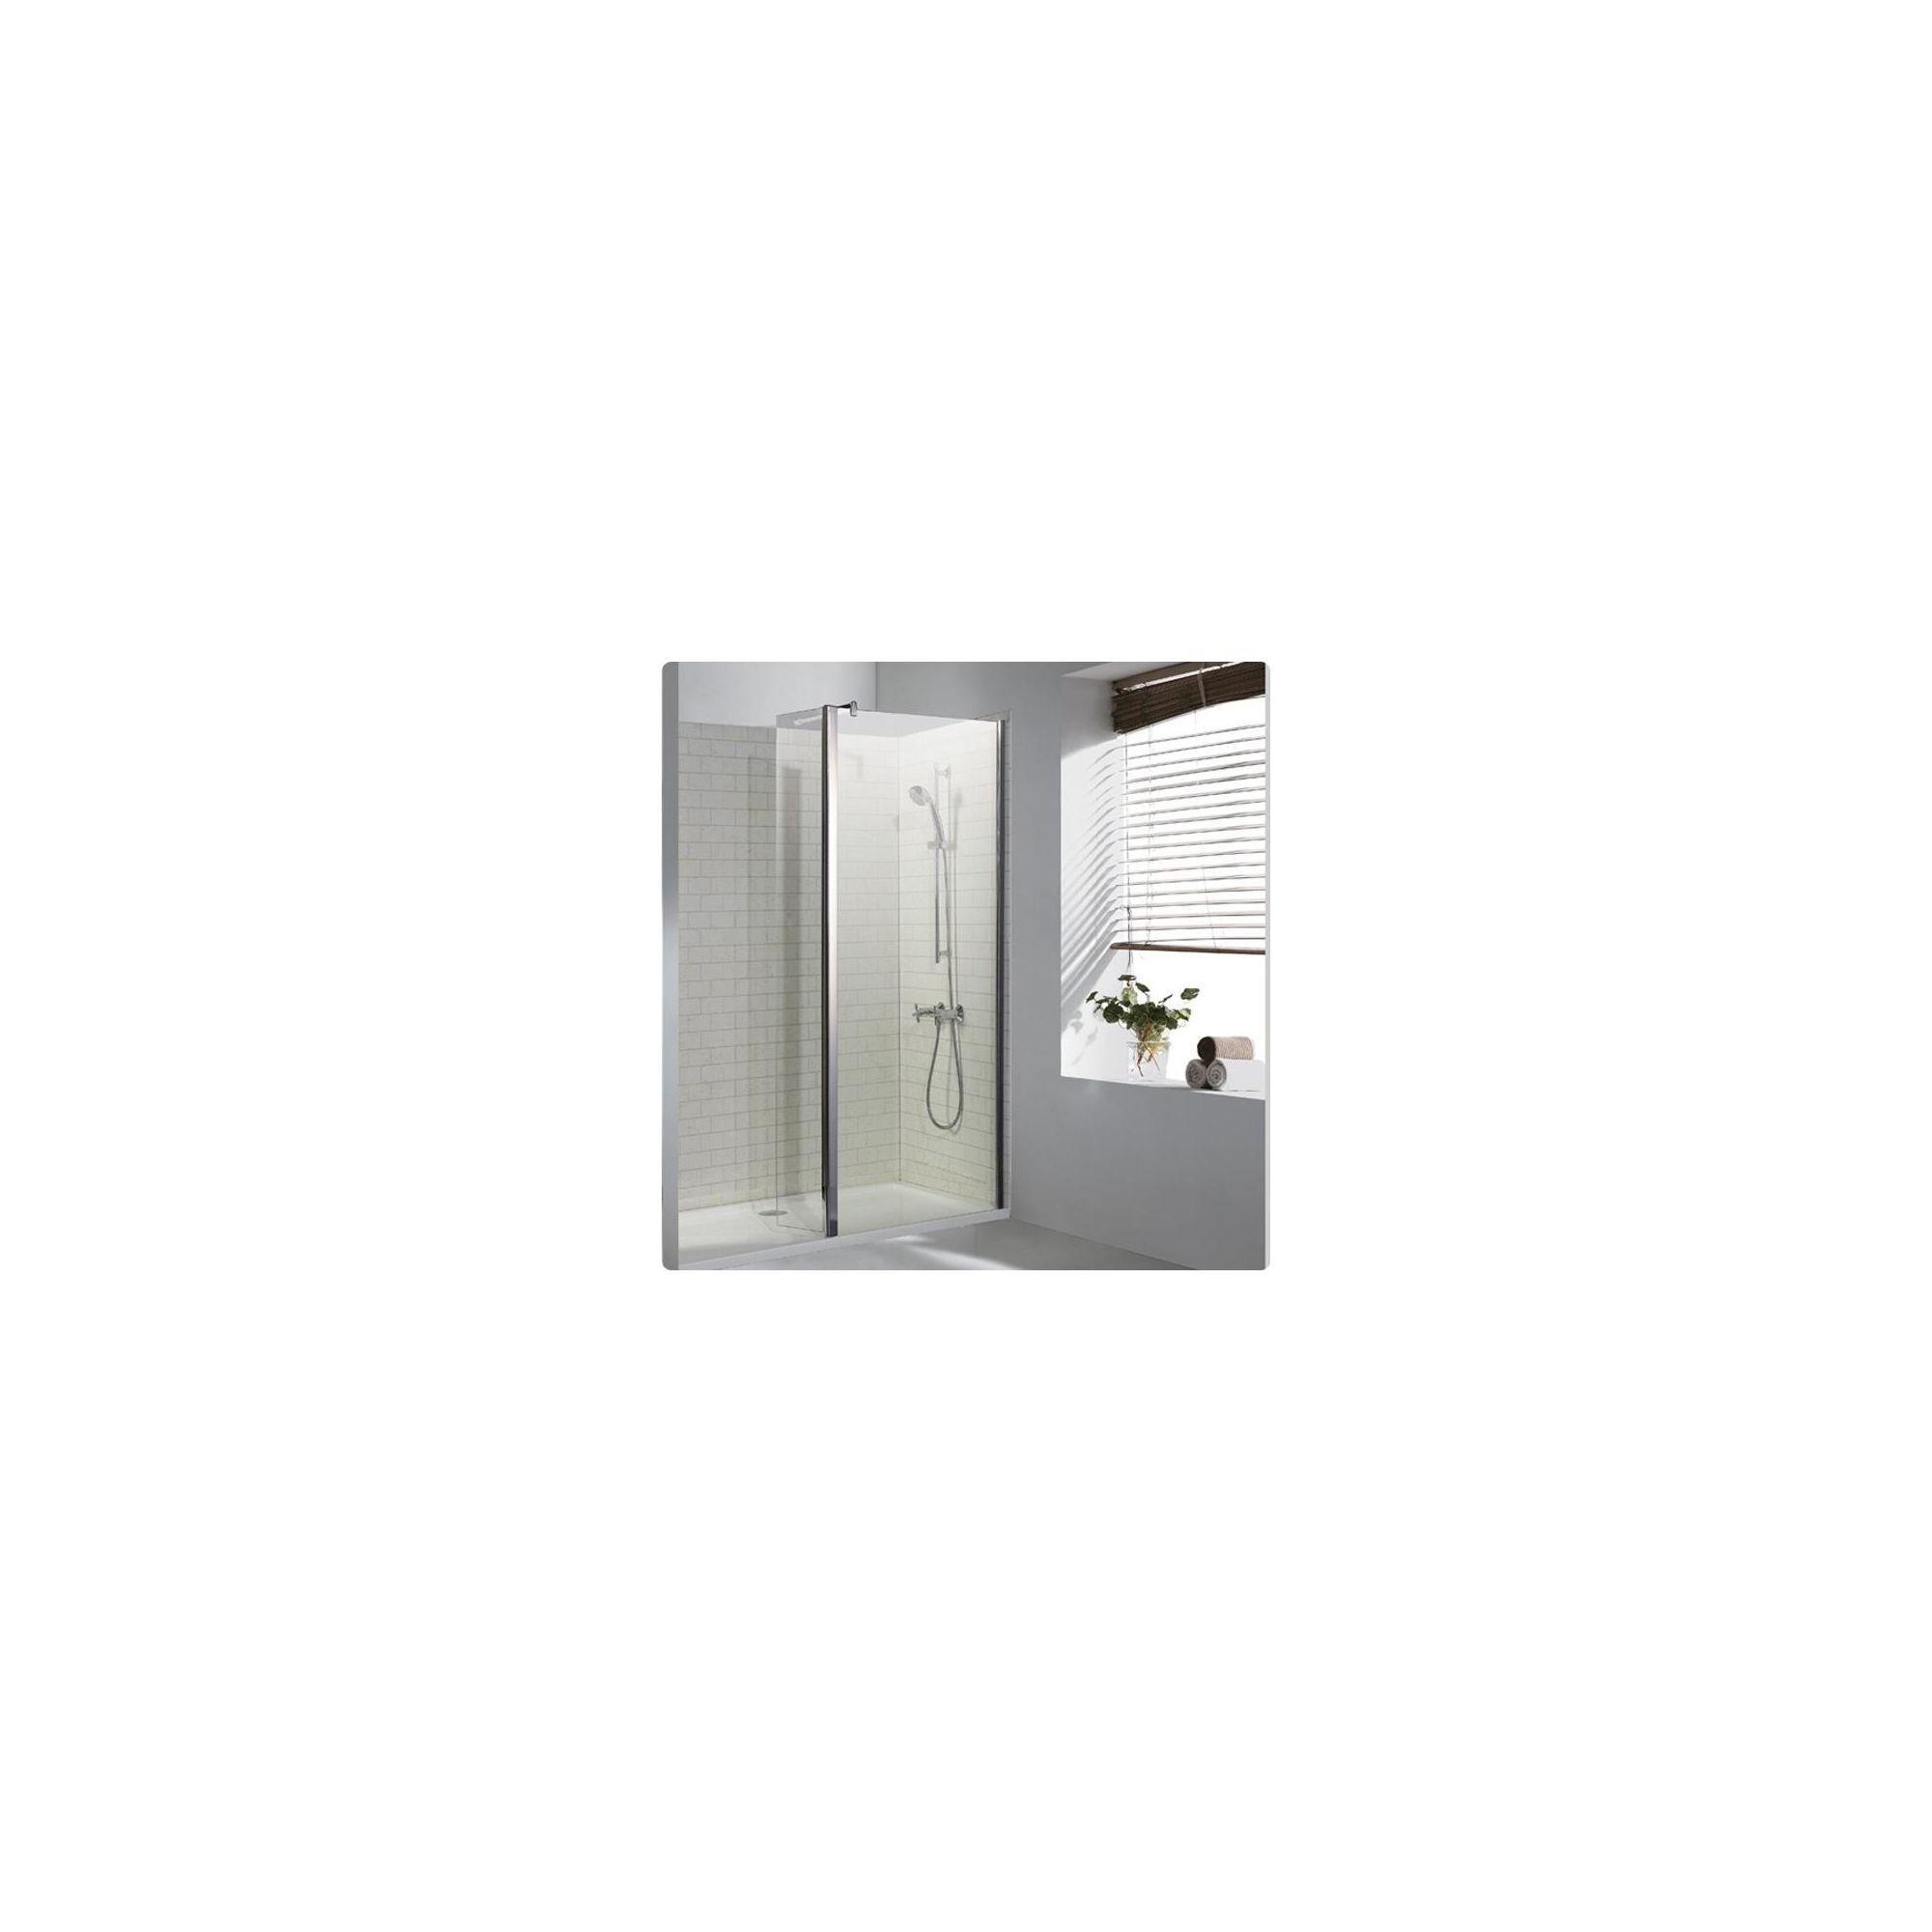 Duchy Choice Silver Walk-In Shower Enclosure 1400mm x 800mm (Complete with Tray), 6mm Glass at Tesco Direct